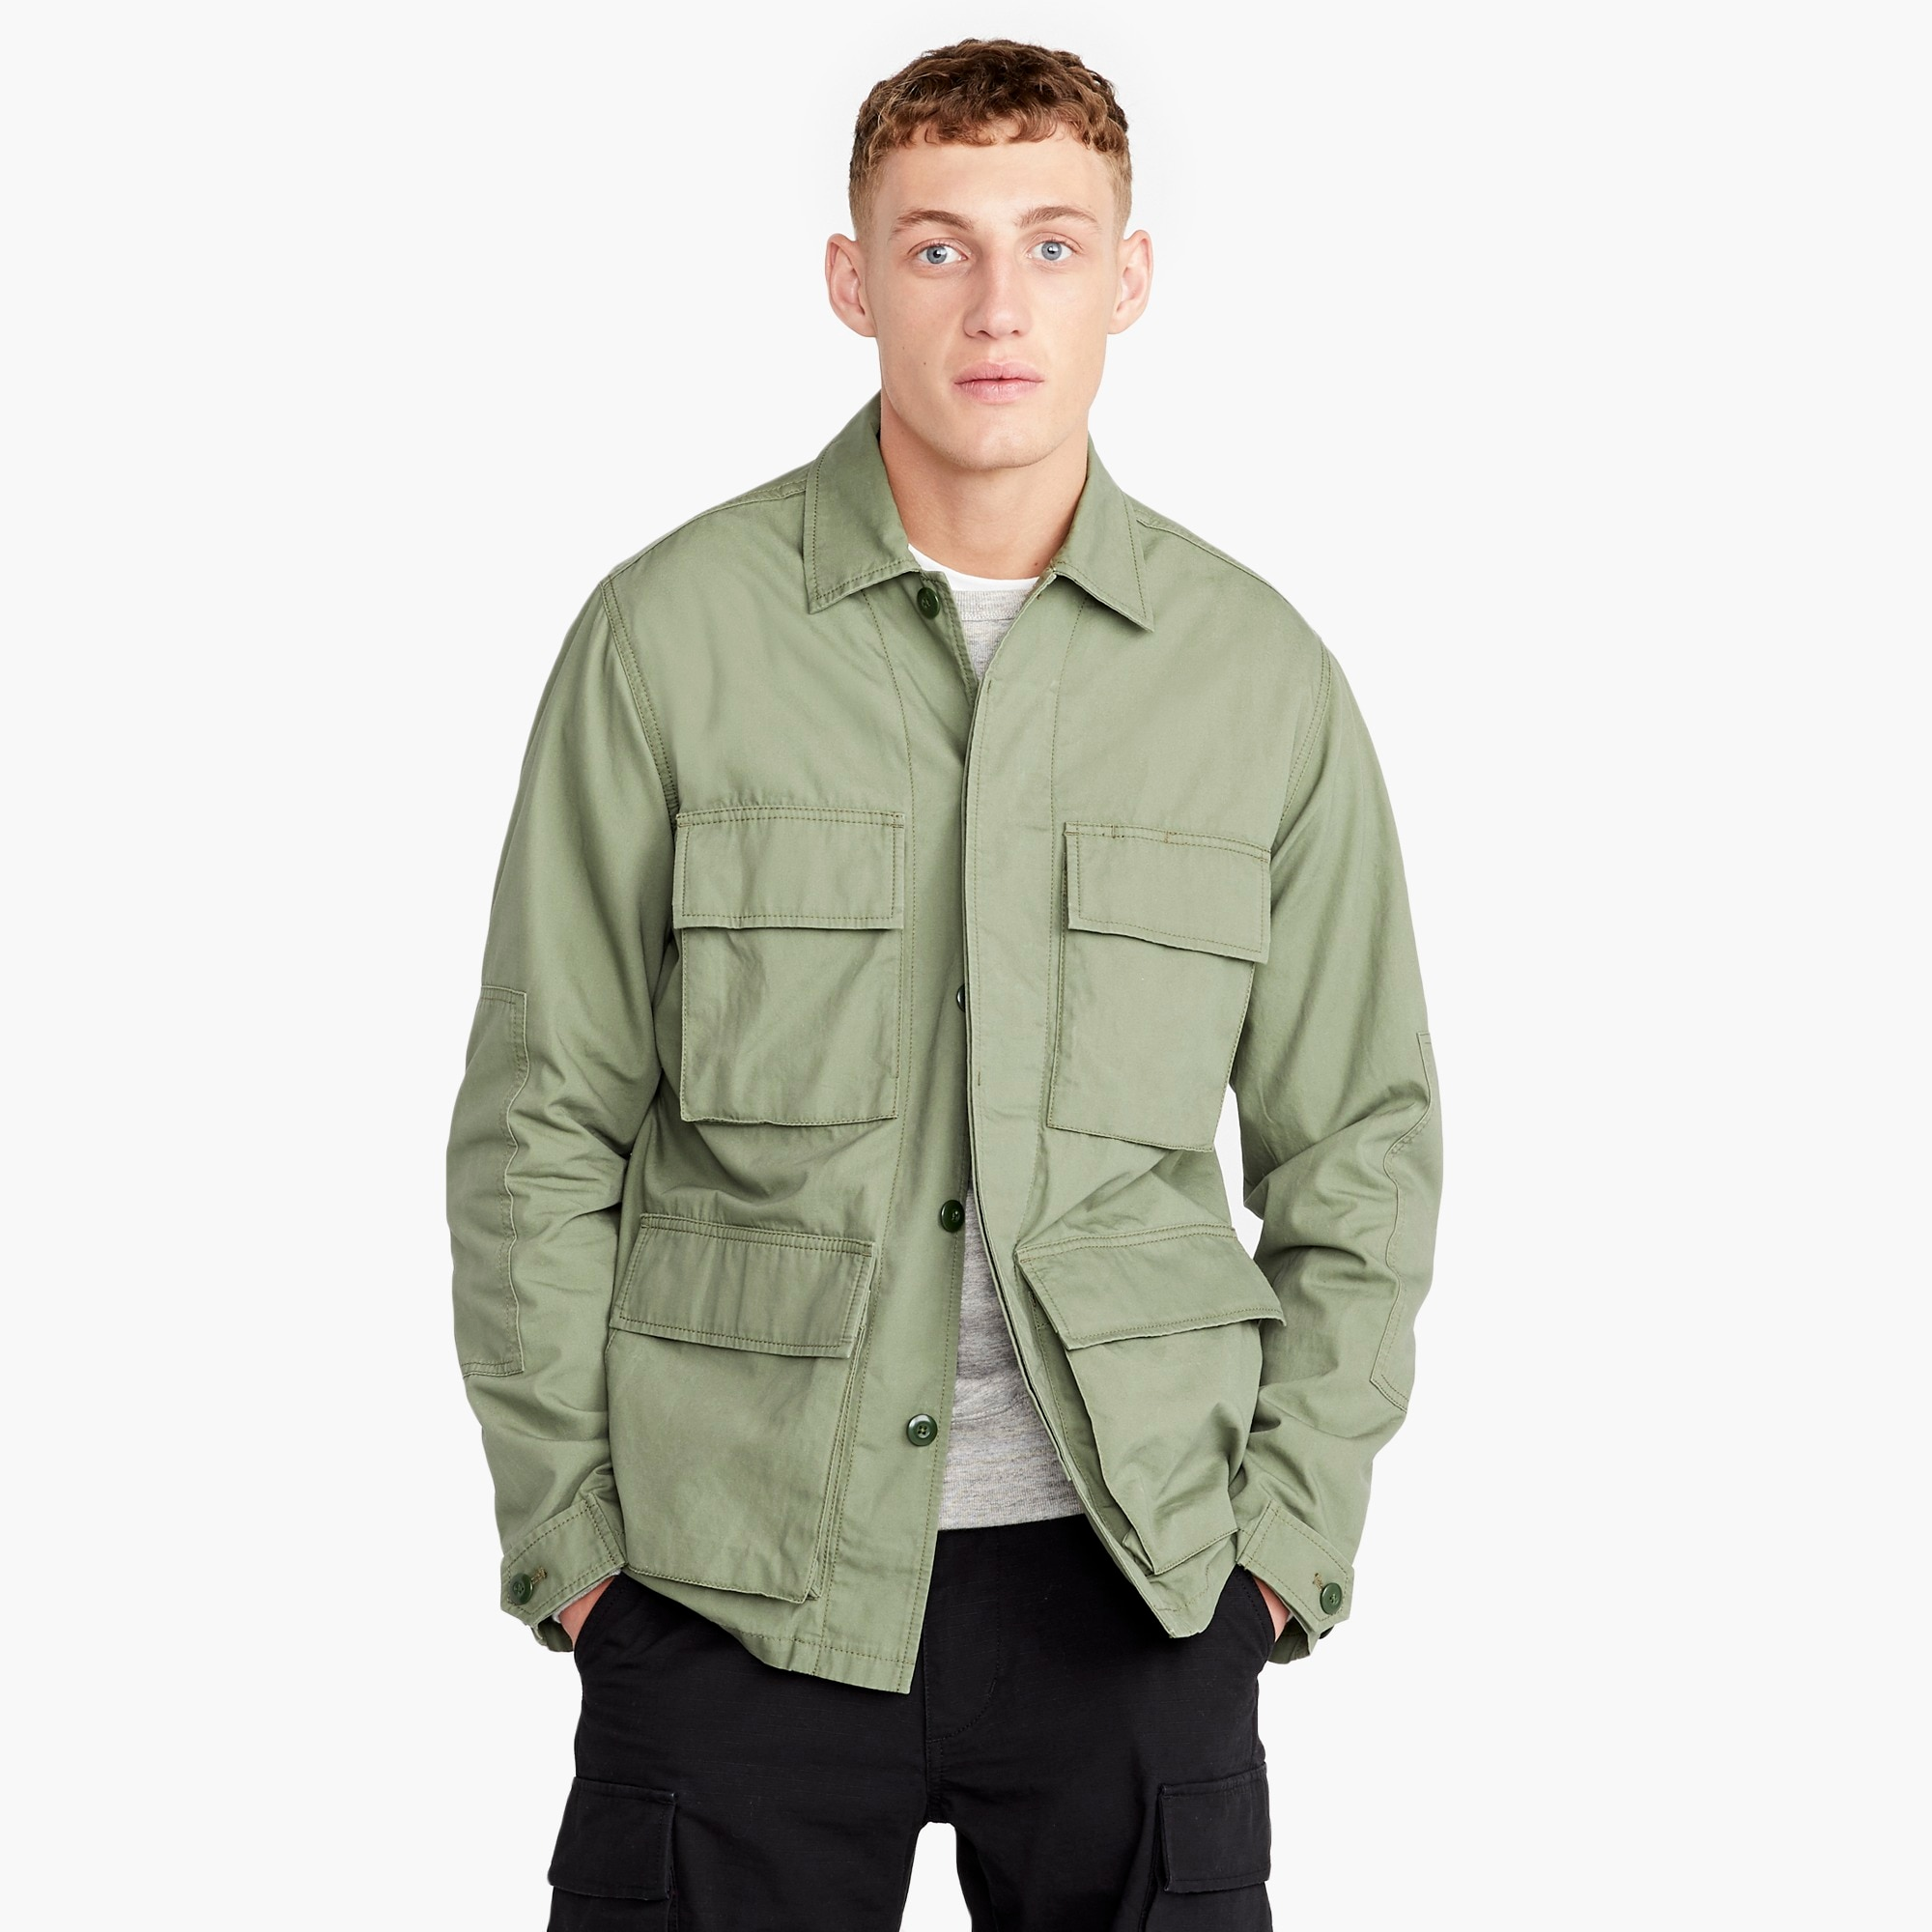 Image 1 for J.Crew Mercantile field jacket